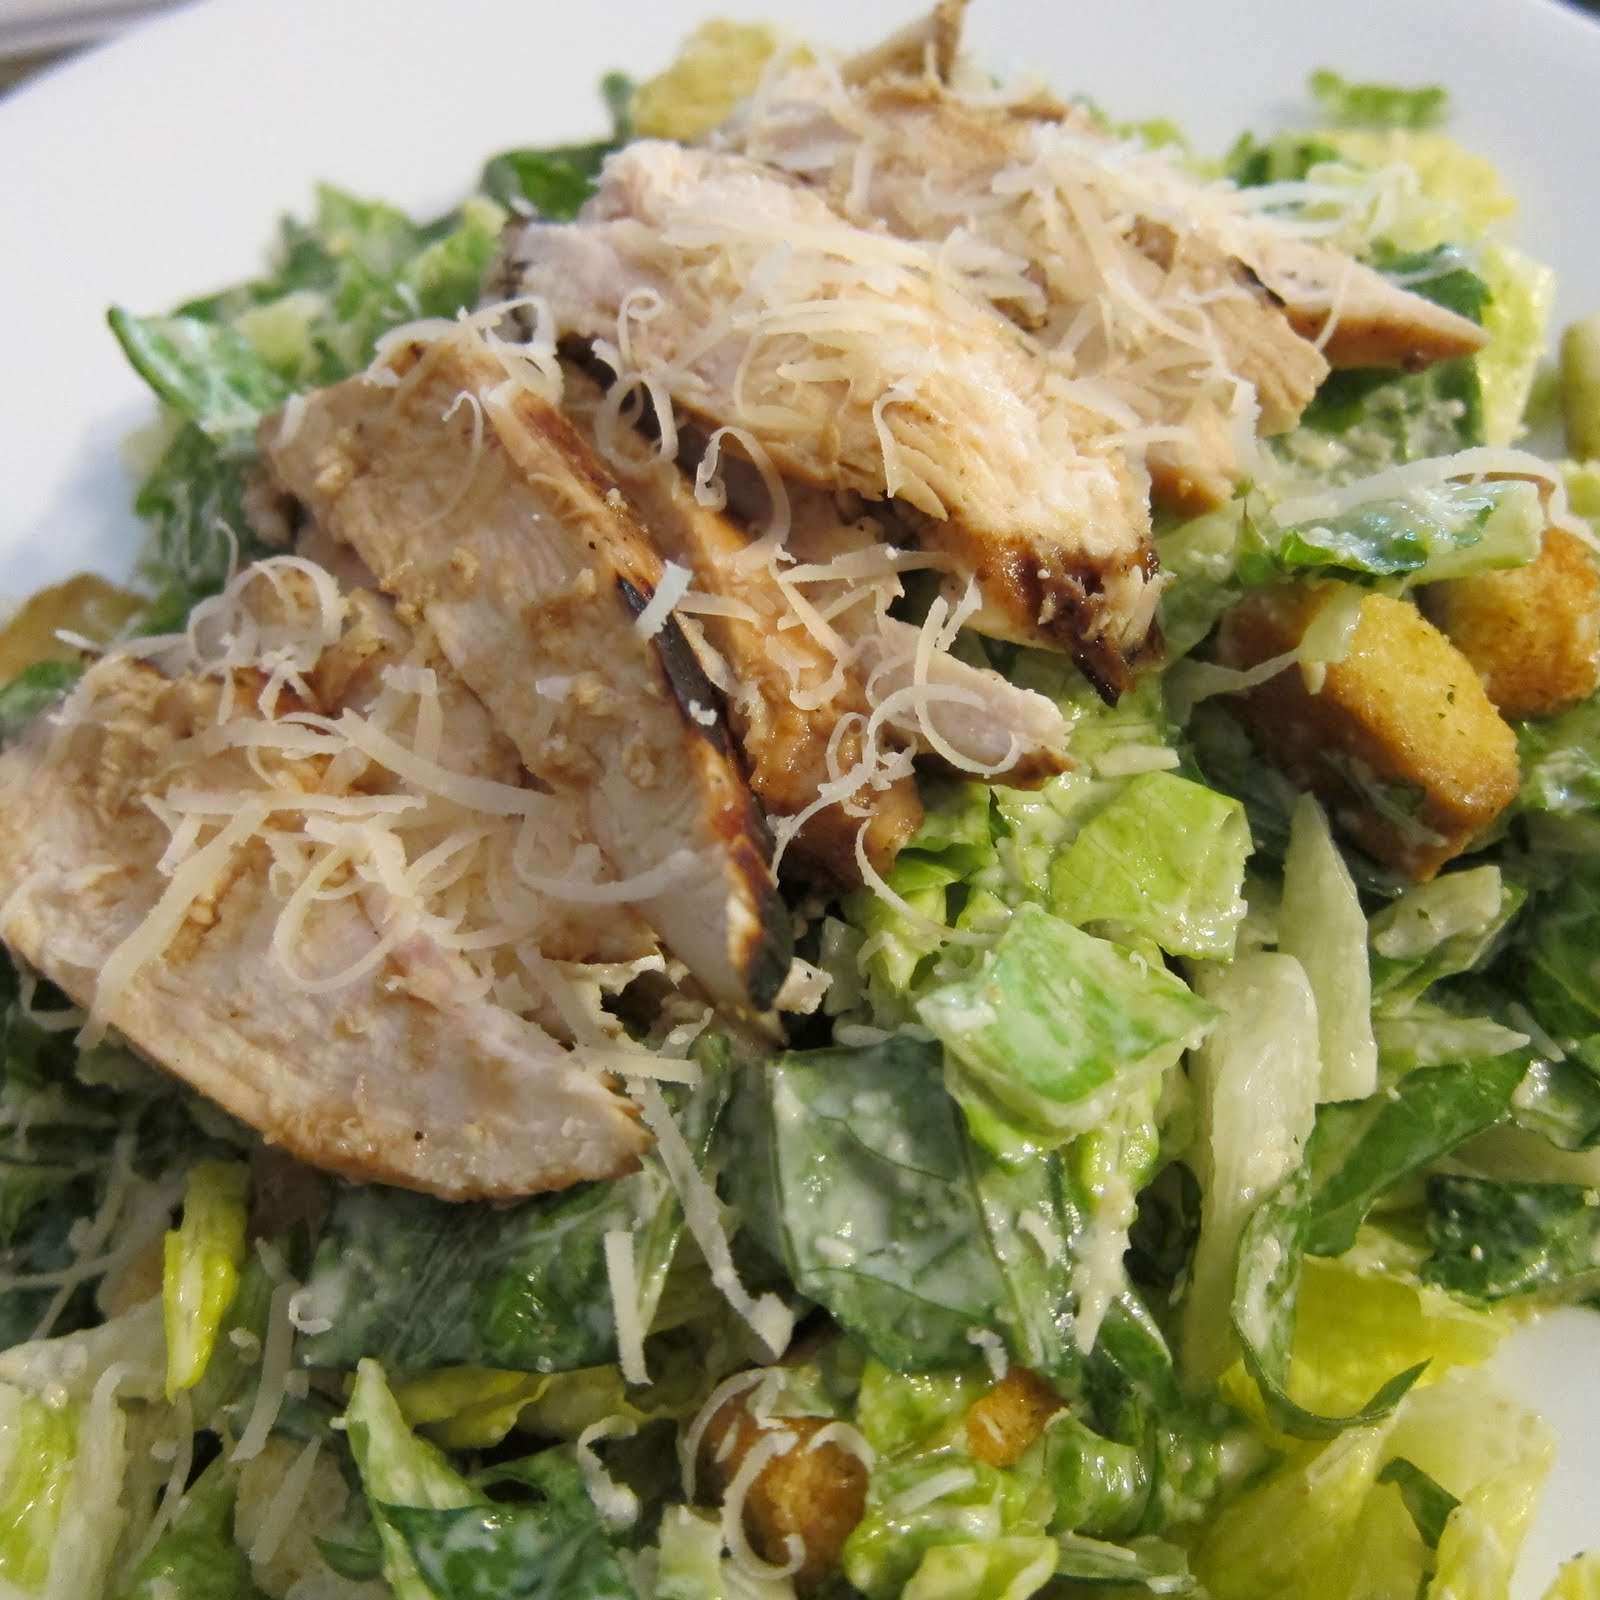 This chicken caesar salad is tasty and filling